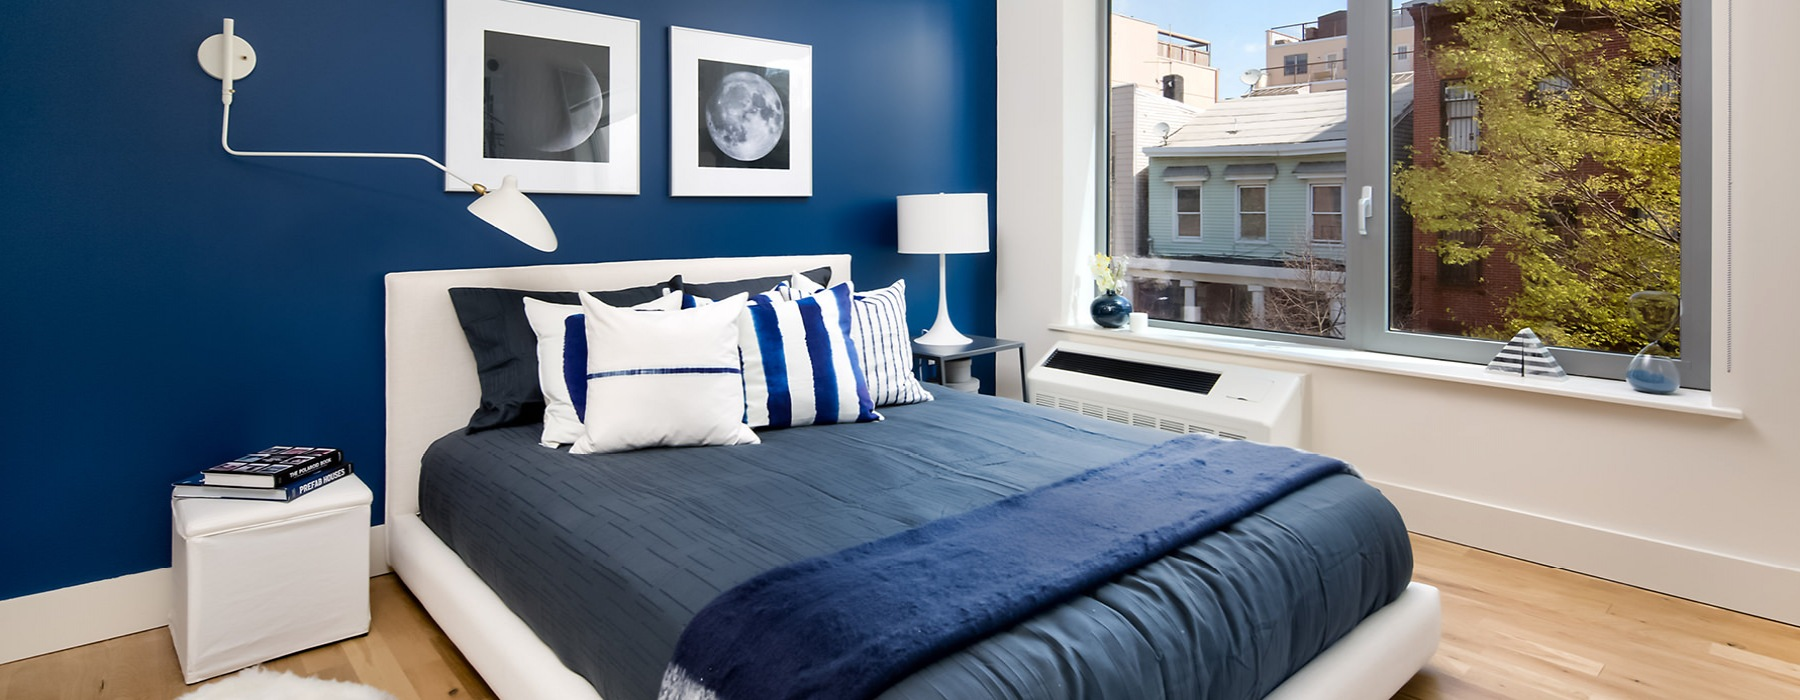 Bedroom with large open window, blue comfort set and blue accent wall